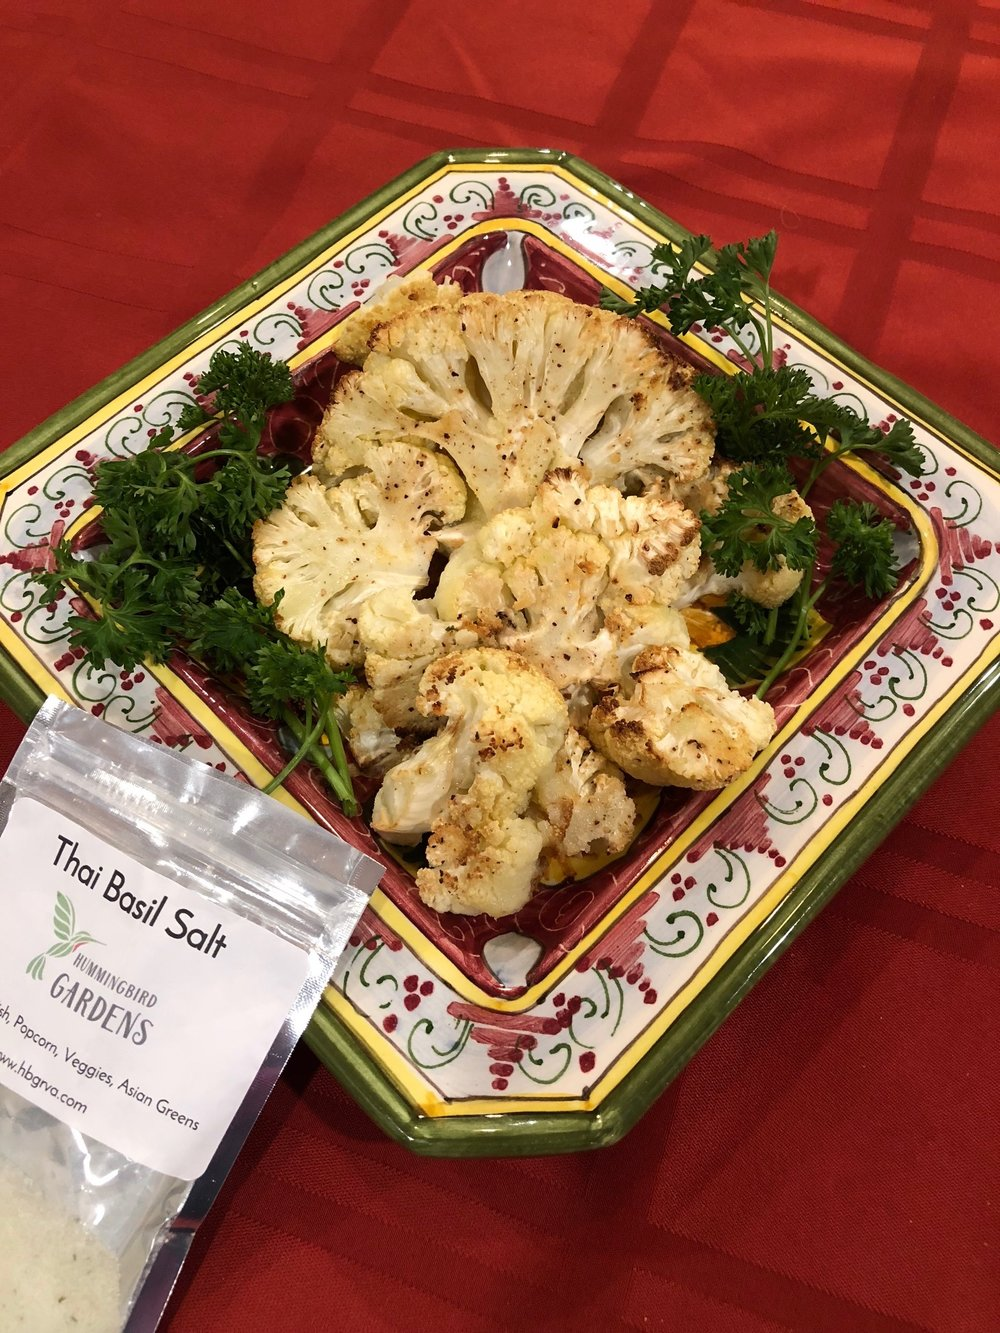 Roasted Cauliflower - with Thai Basil Salt